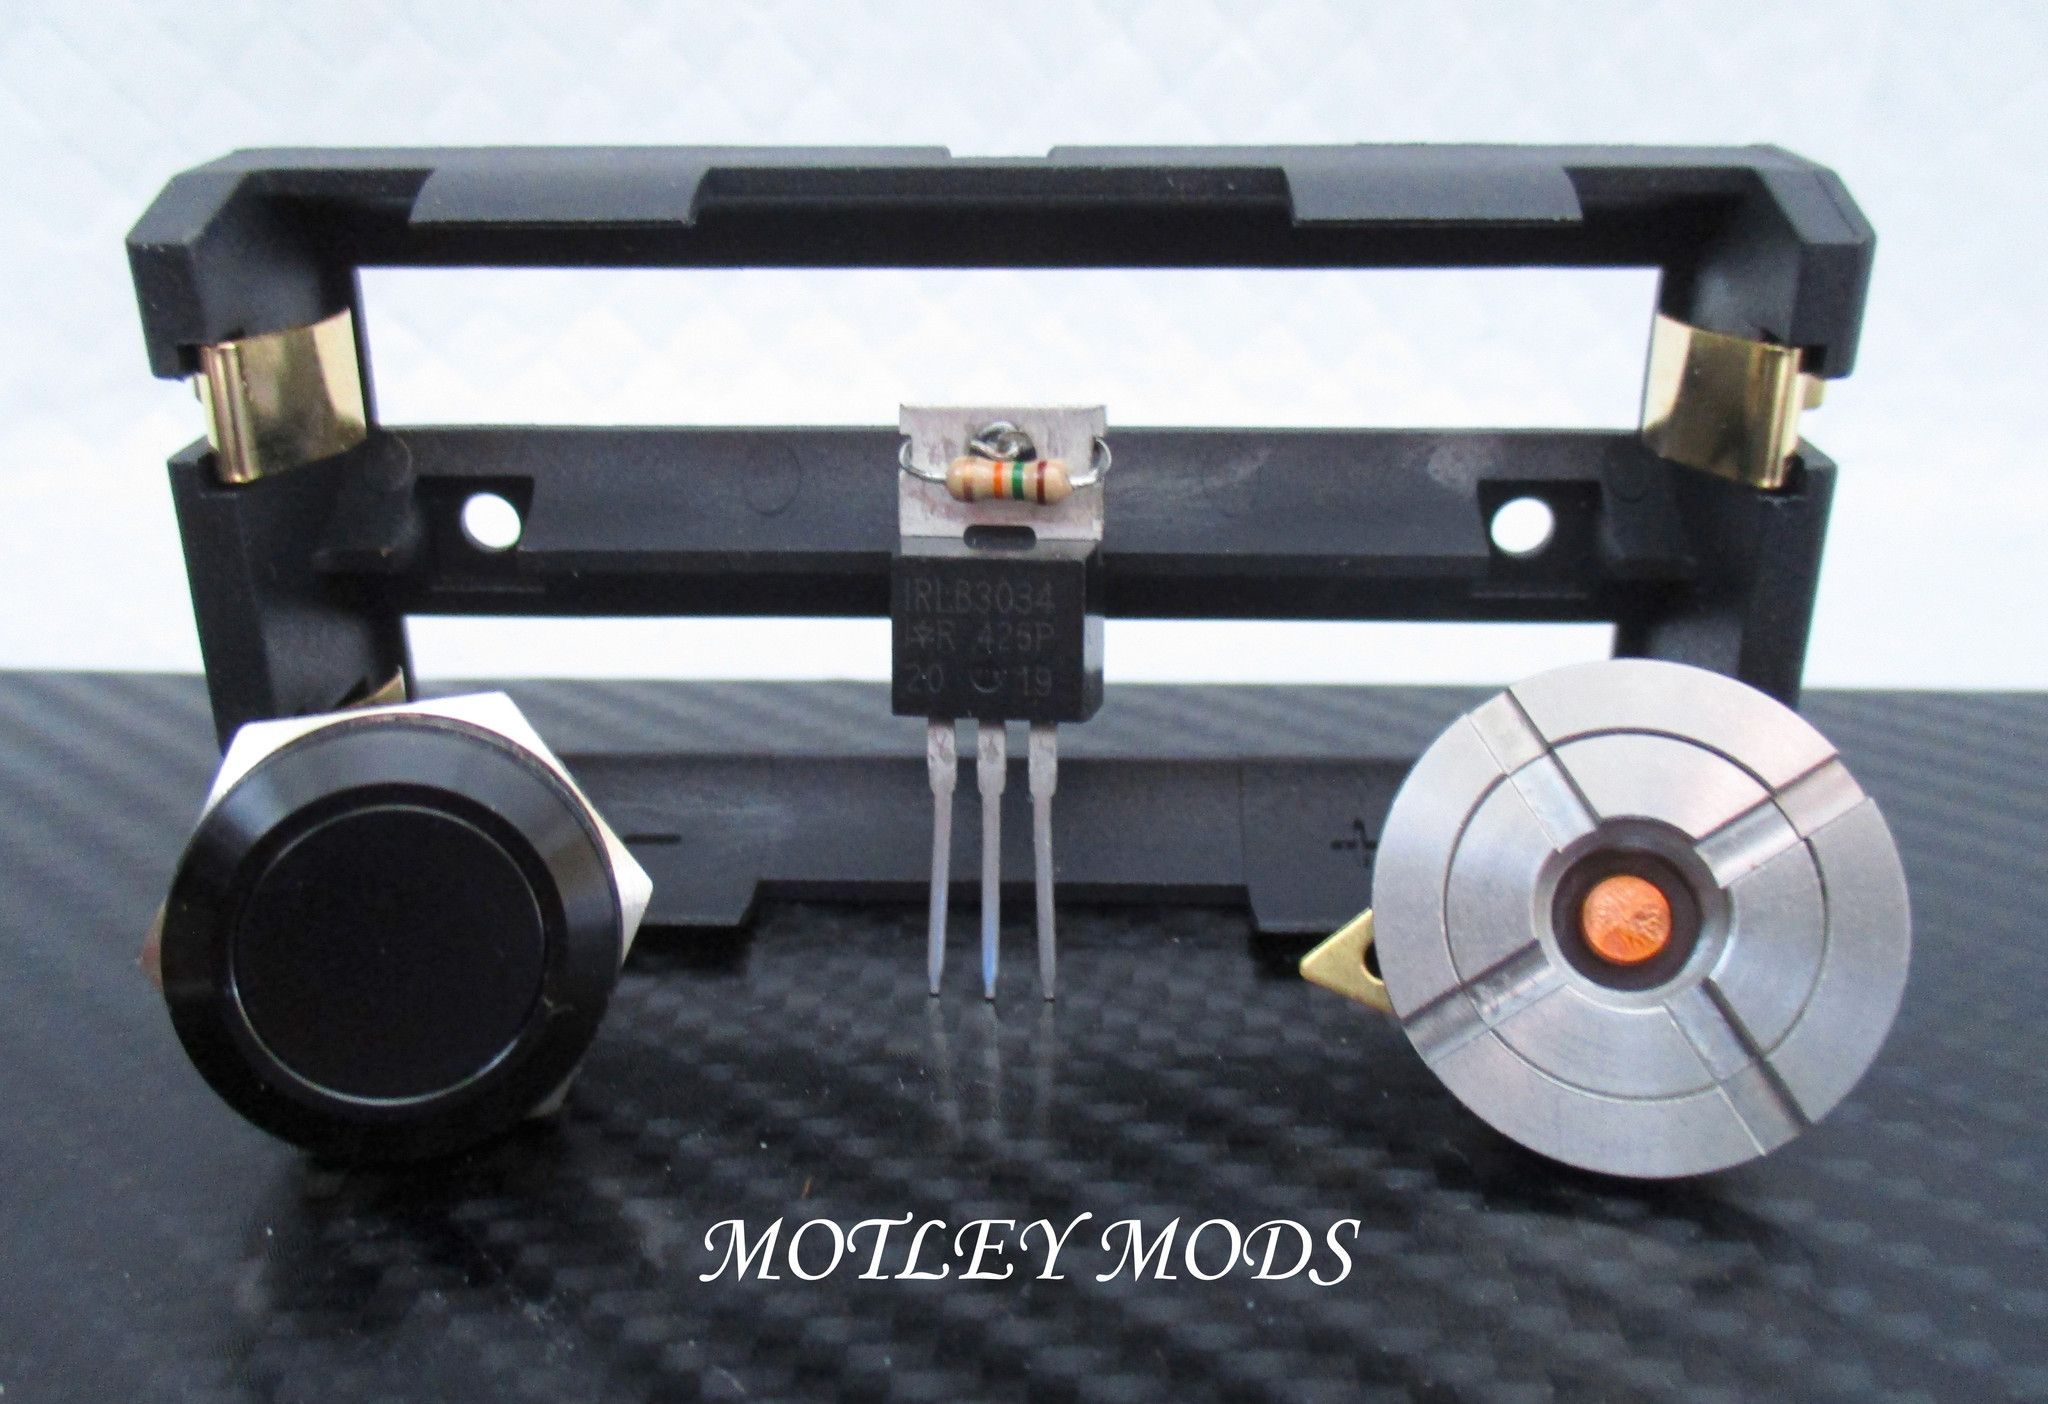 * 3034 Mosfet with 15k resistor * 16mm Black Button * 15mm